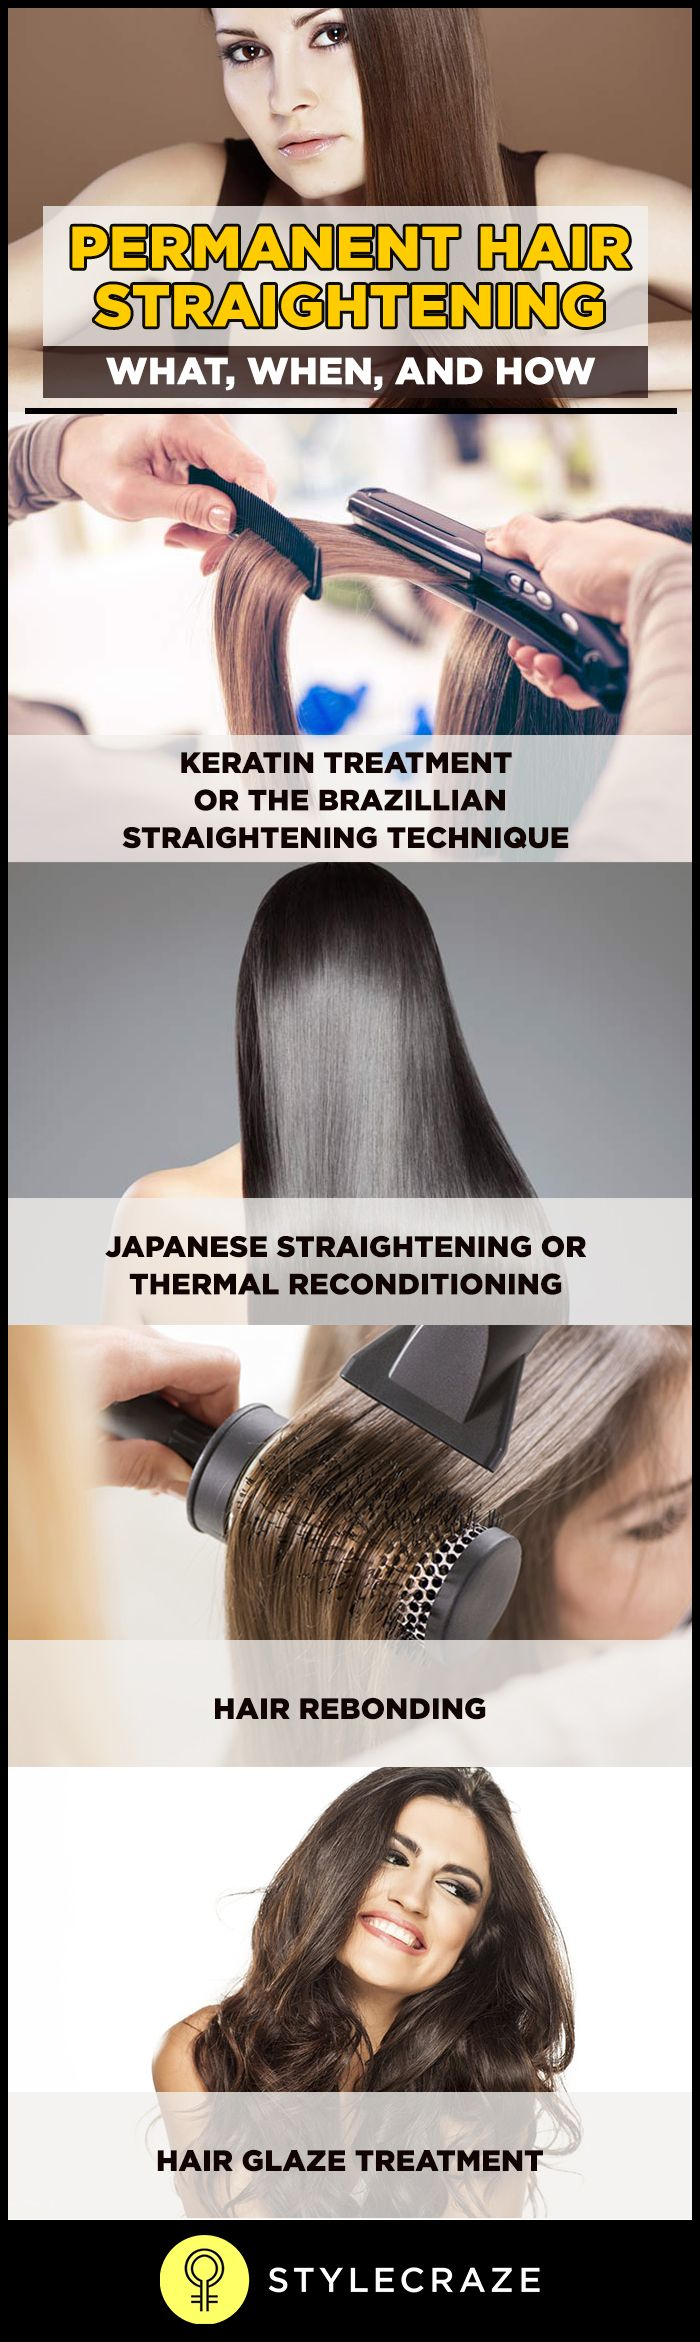 Women love to have long, beautiful, shining and straight looking hair. In order to get this, they try different things, and permanent hair straightening is one of them. Before opting for hair straightening permanently, know what it means-